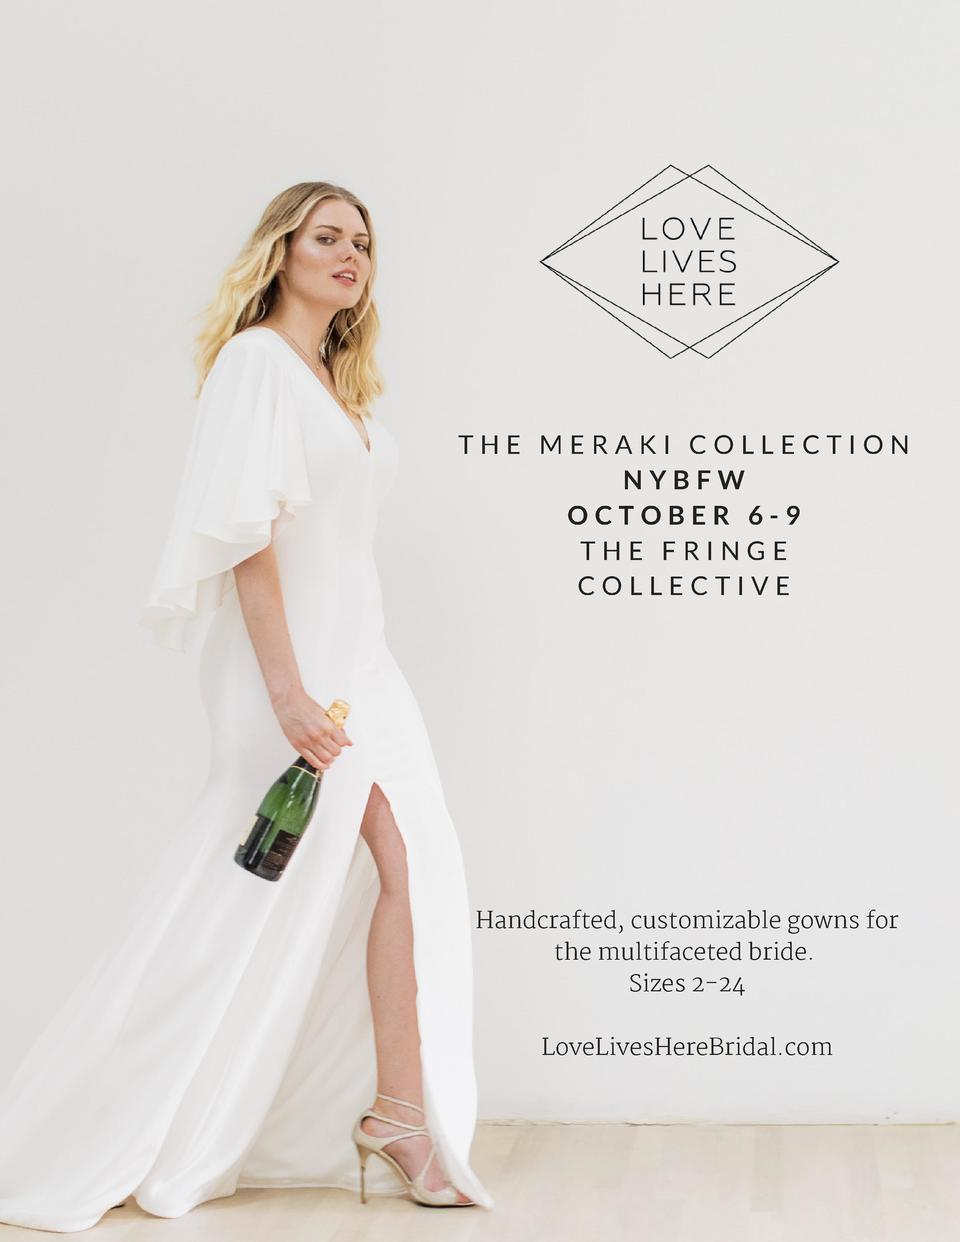 THE MERAKI COLLECTION NYBFW OCTOBER 6-9 THE FRINGE COLLECTIVE  Handcrafted, customizable gowns for the multifaceted bride....